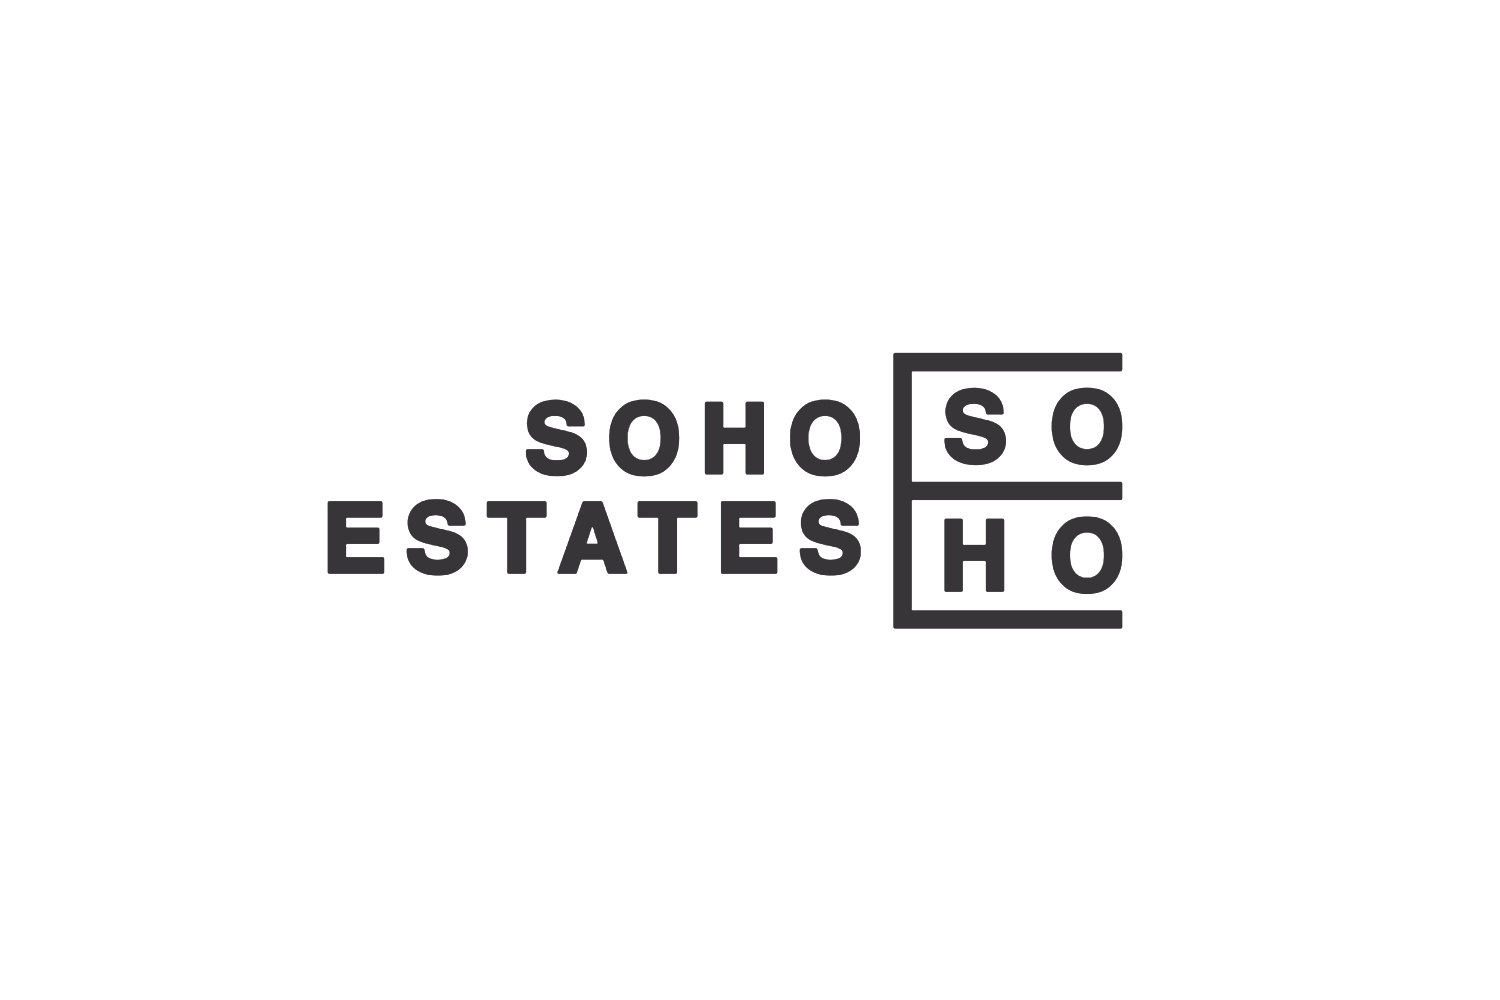 Soho Estates.jpg